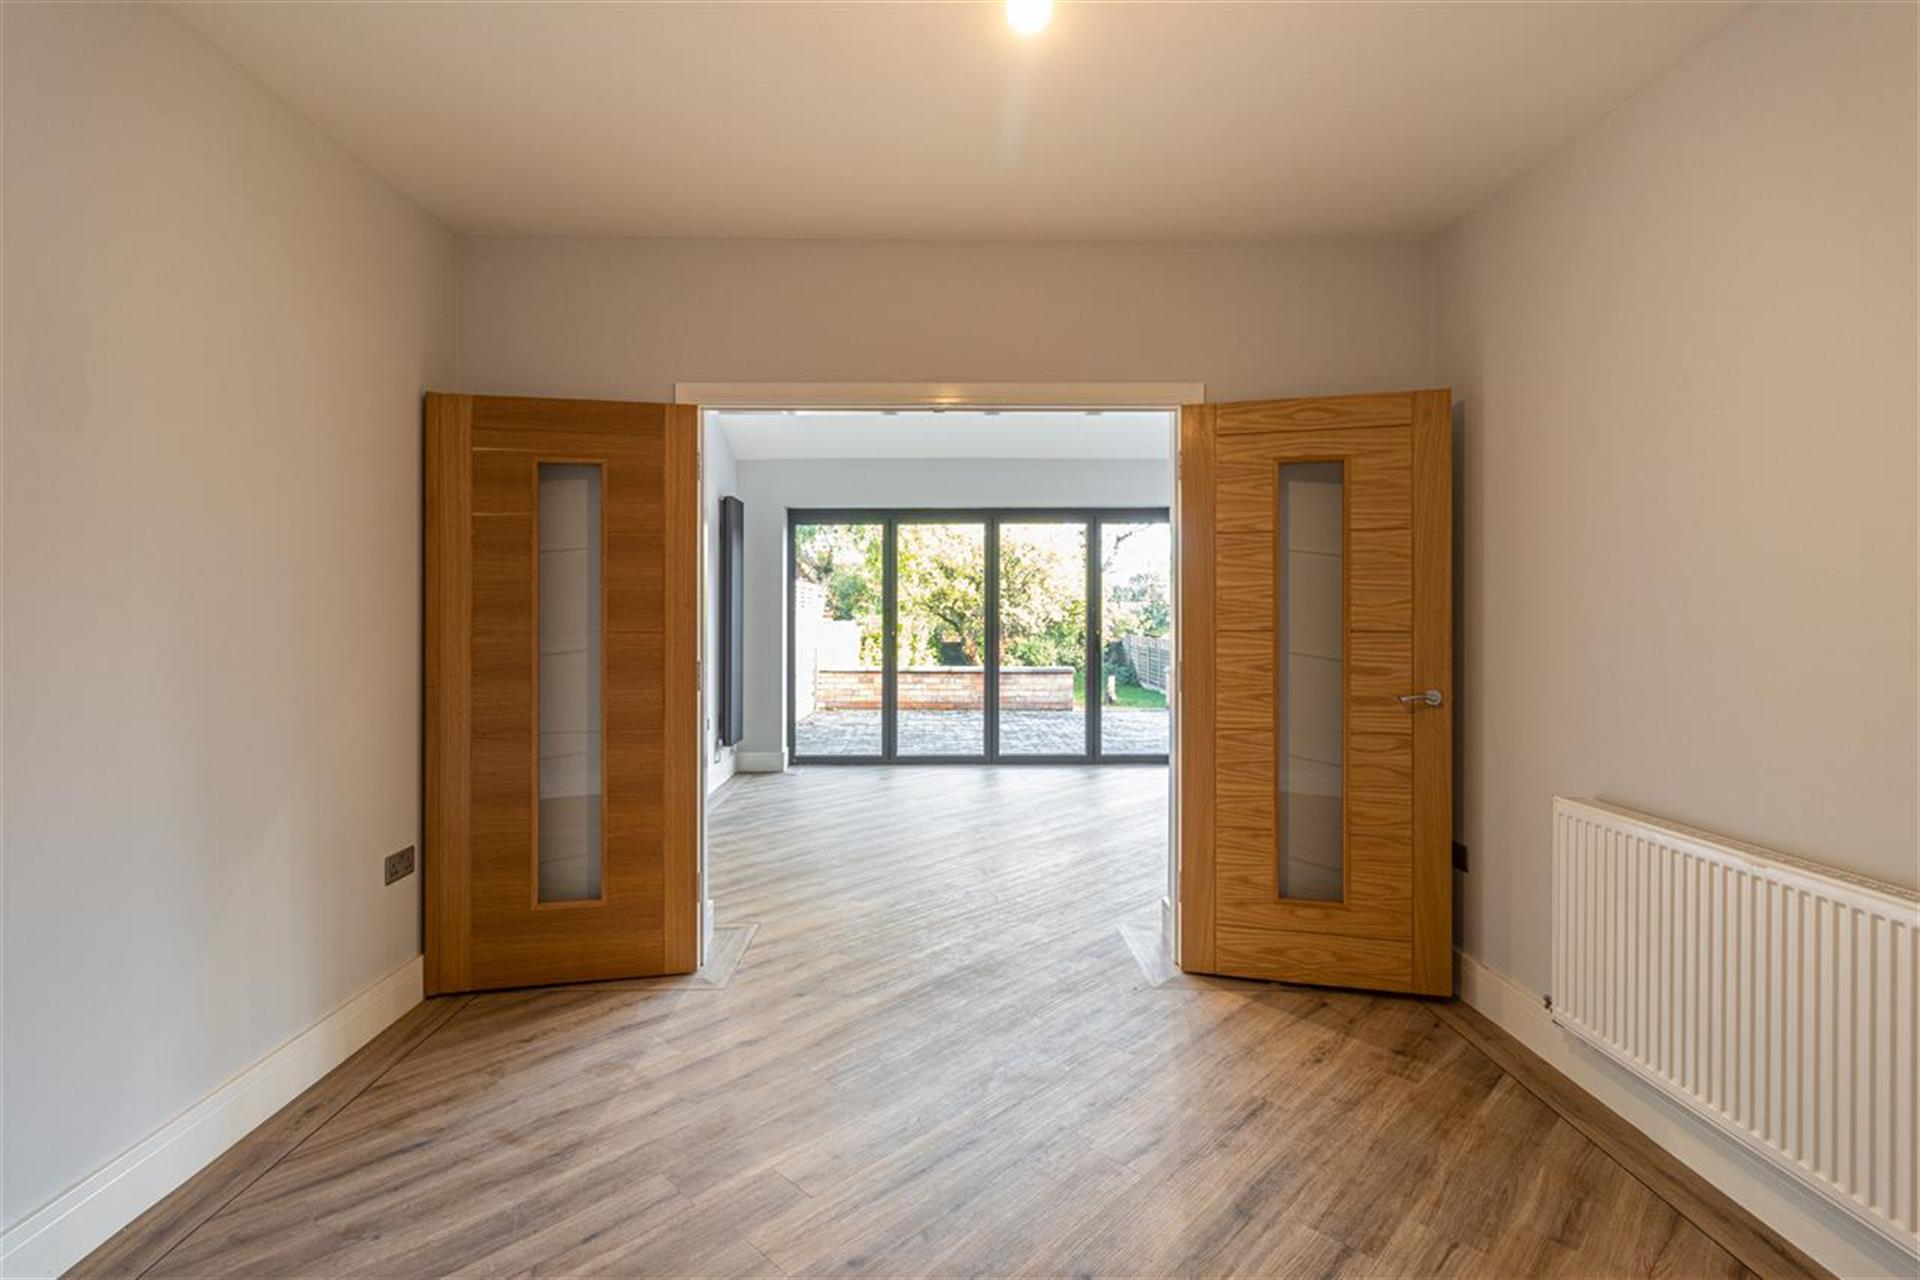 6 Bedroom Detached House For Sale - Reception Room Two